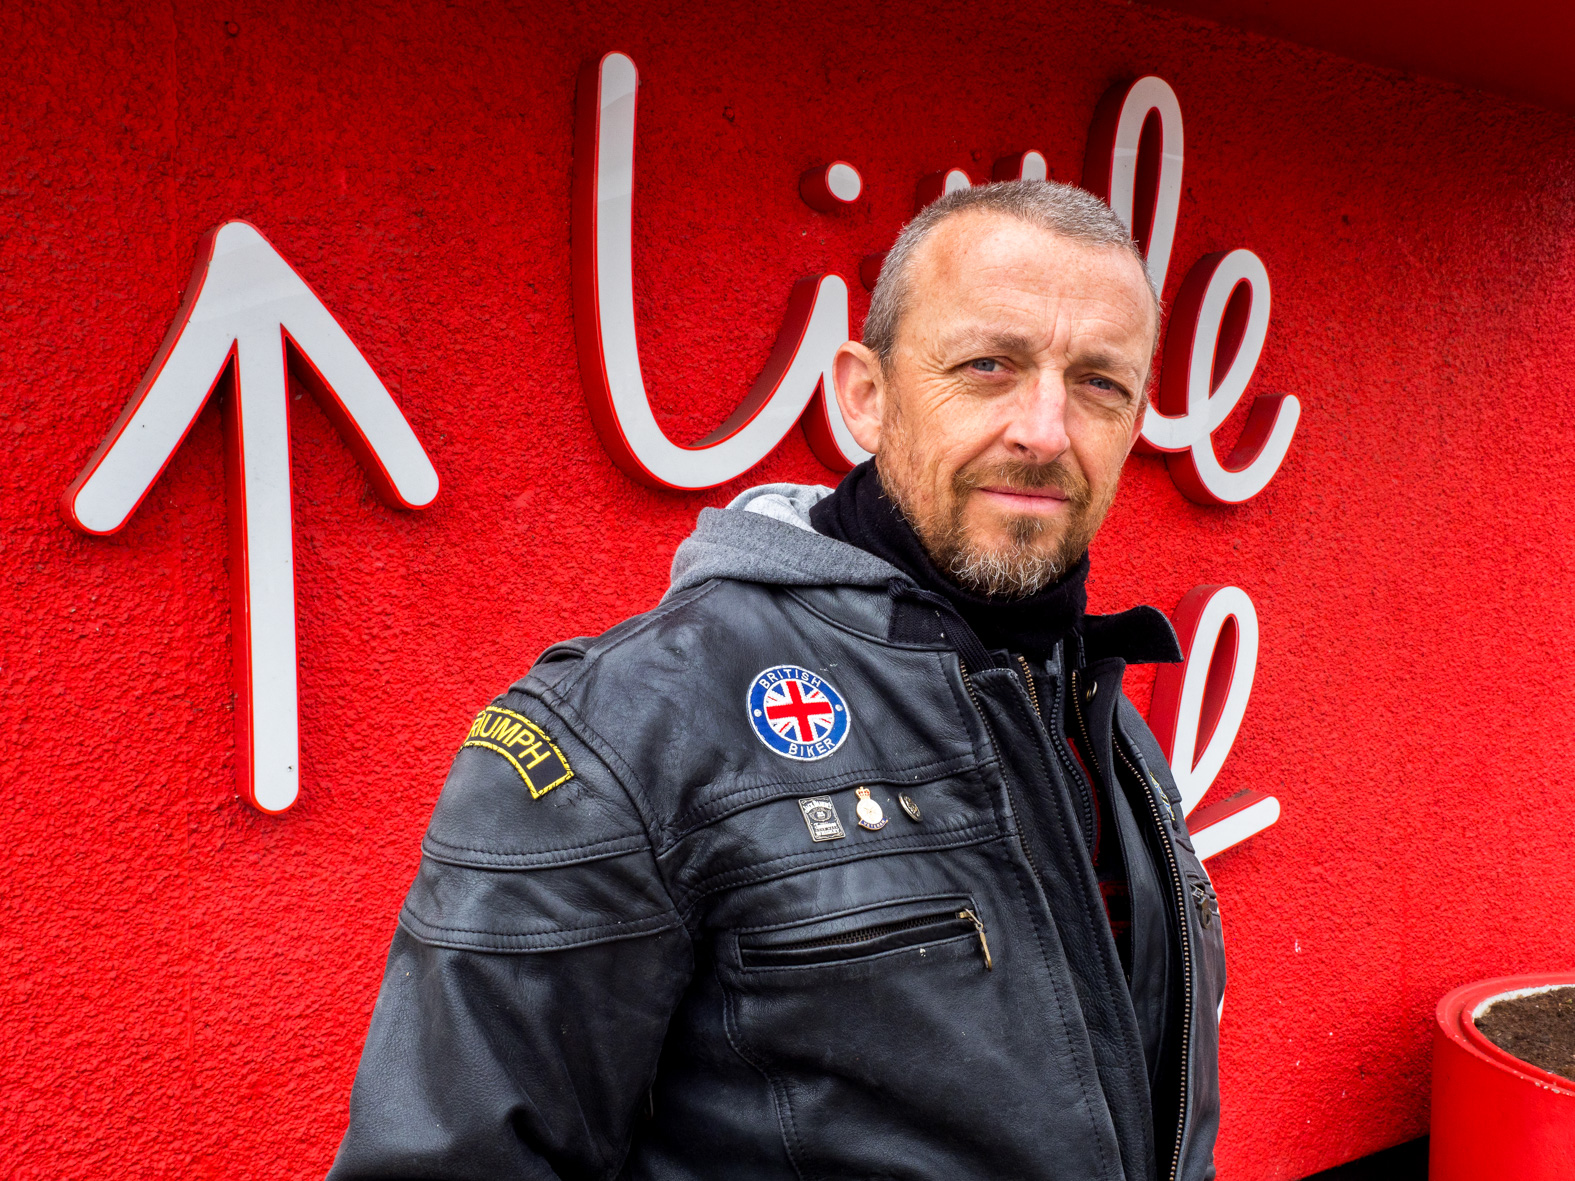 Dave waits for friends at Little Chef for a Sunday motorcycle ride. From Doncaster, he says the town has gone more upmarket. Dave who has invesmants in property and shares, voted remain in the 2016 European Union membership referendum. South Yorkshire.